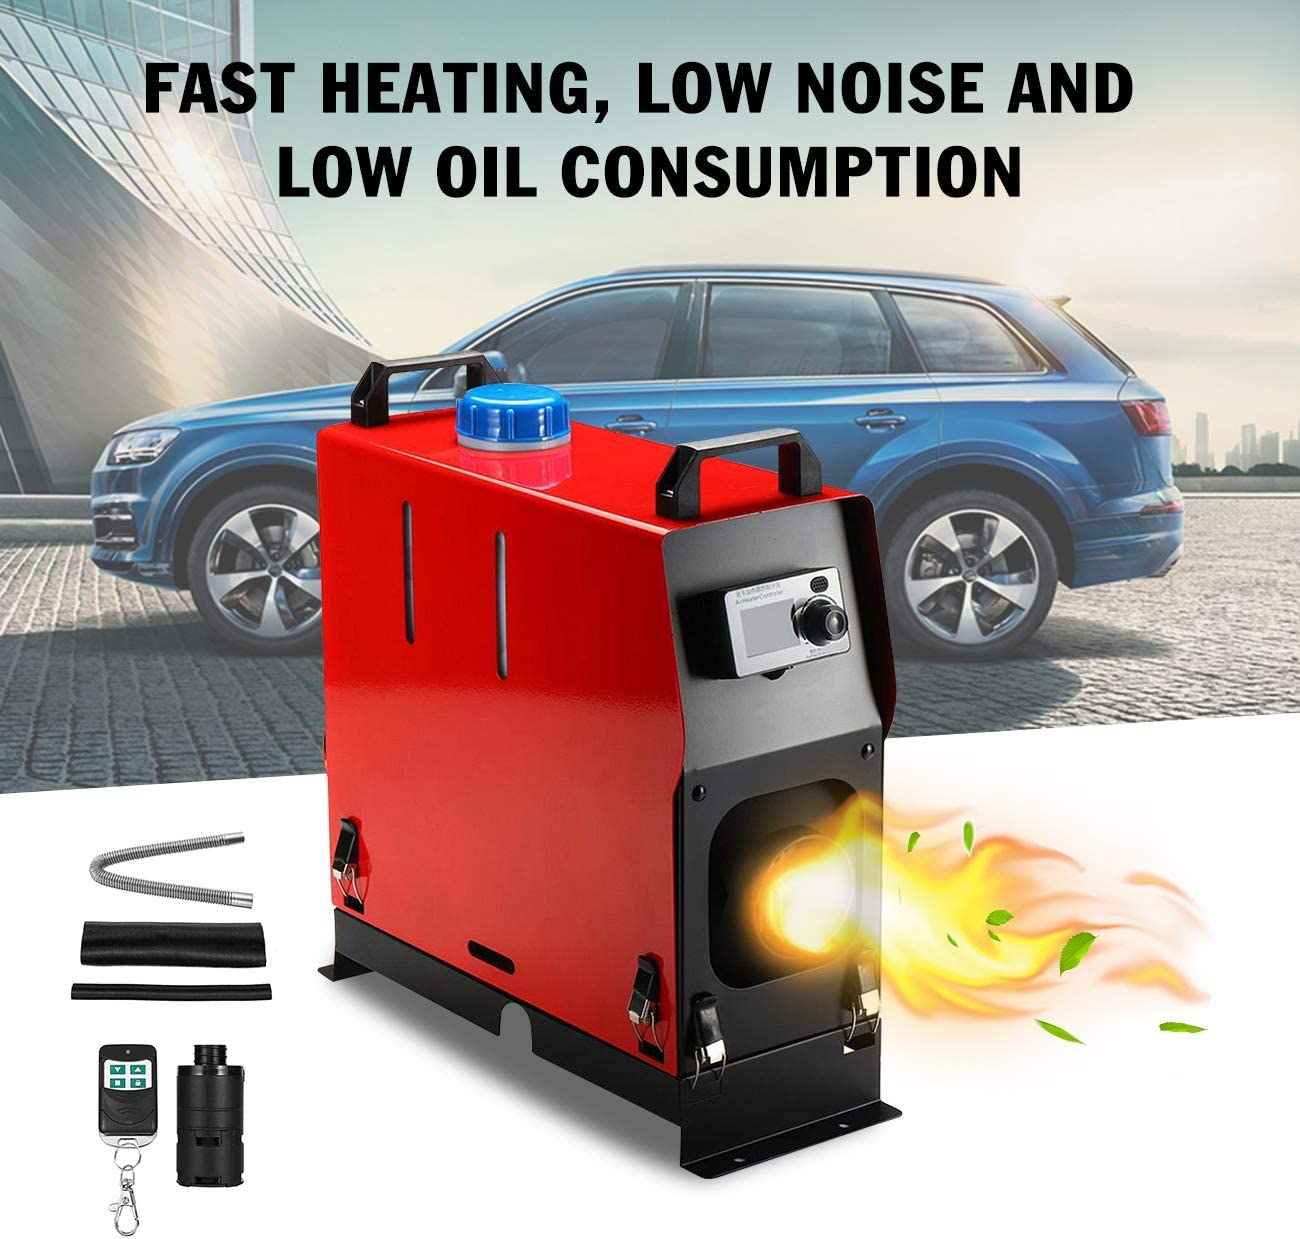 Happybuy 5KW Diesel Air Heater Muffler Diesel Heater 12V Diesel Parking Heater Remote Control with LCD Switch for Car Trucks Motor-Home Boat and Bus